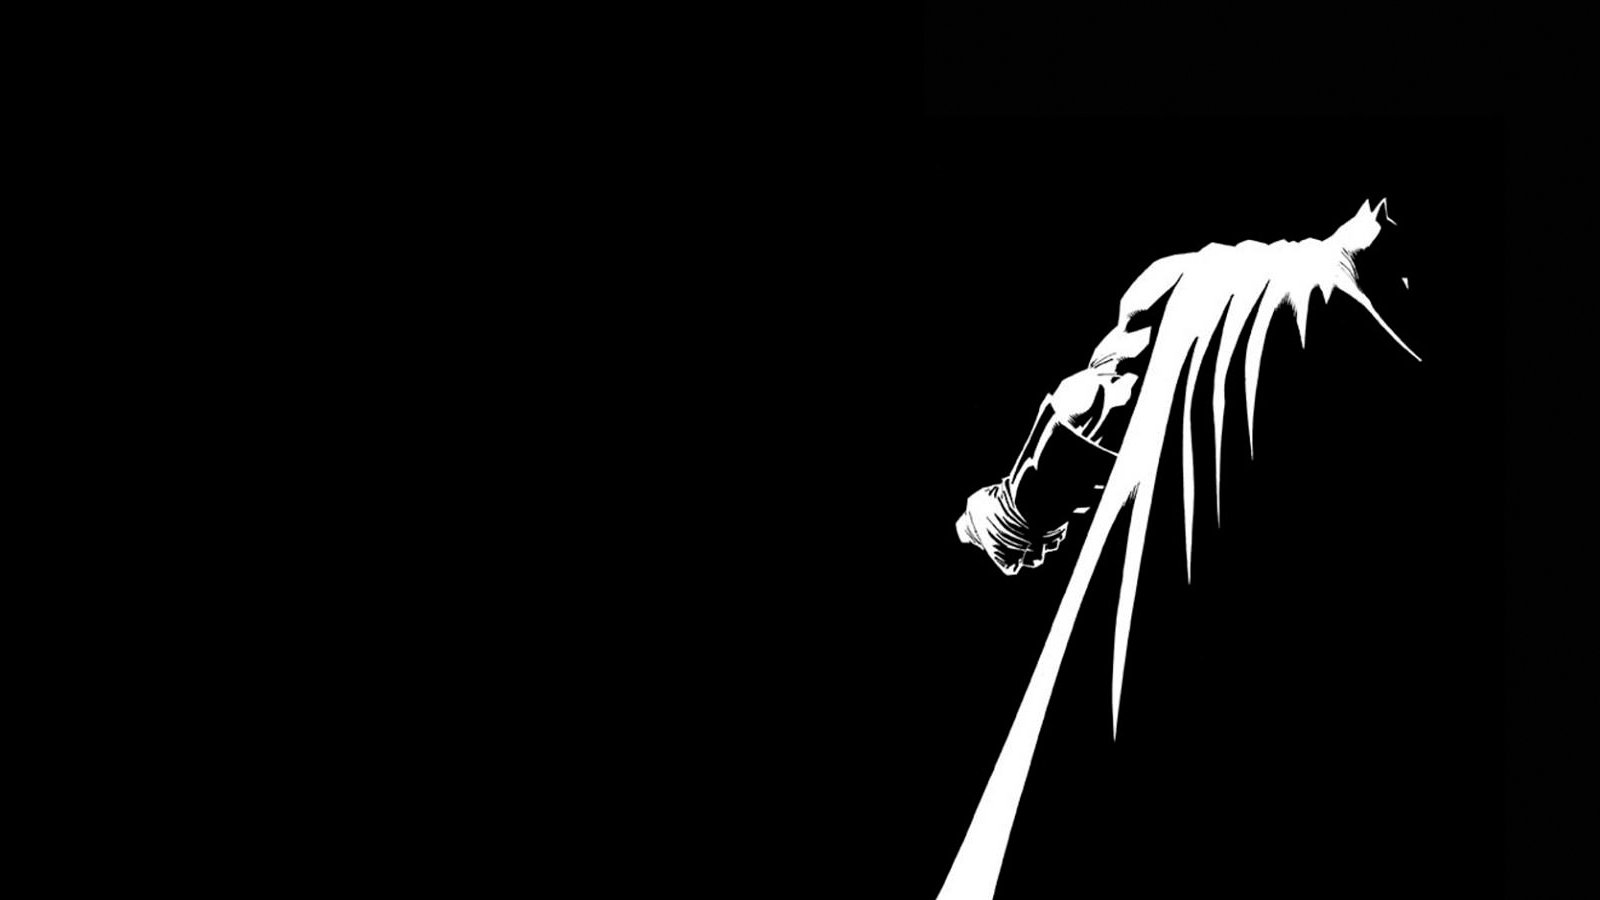 Batman Dark Knight III Frank Miller Cartoon Comics DC Jim Lee 1600x900